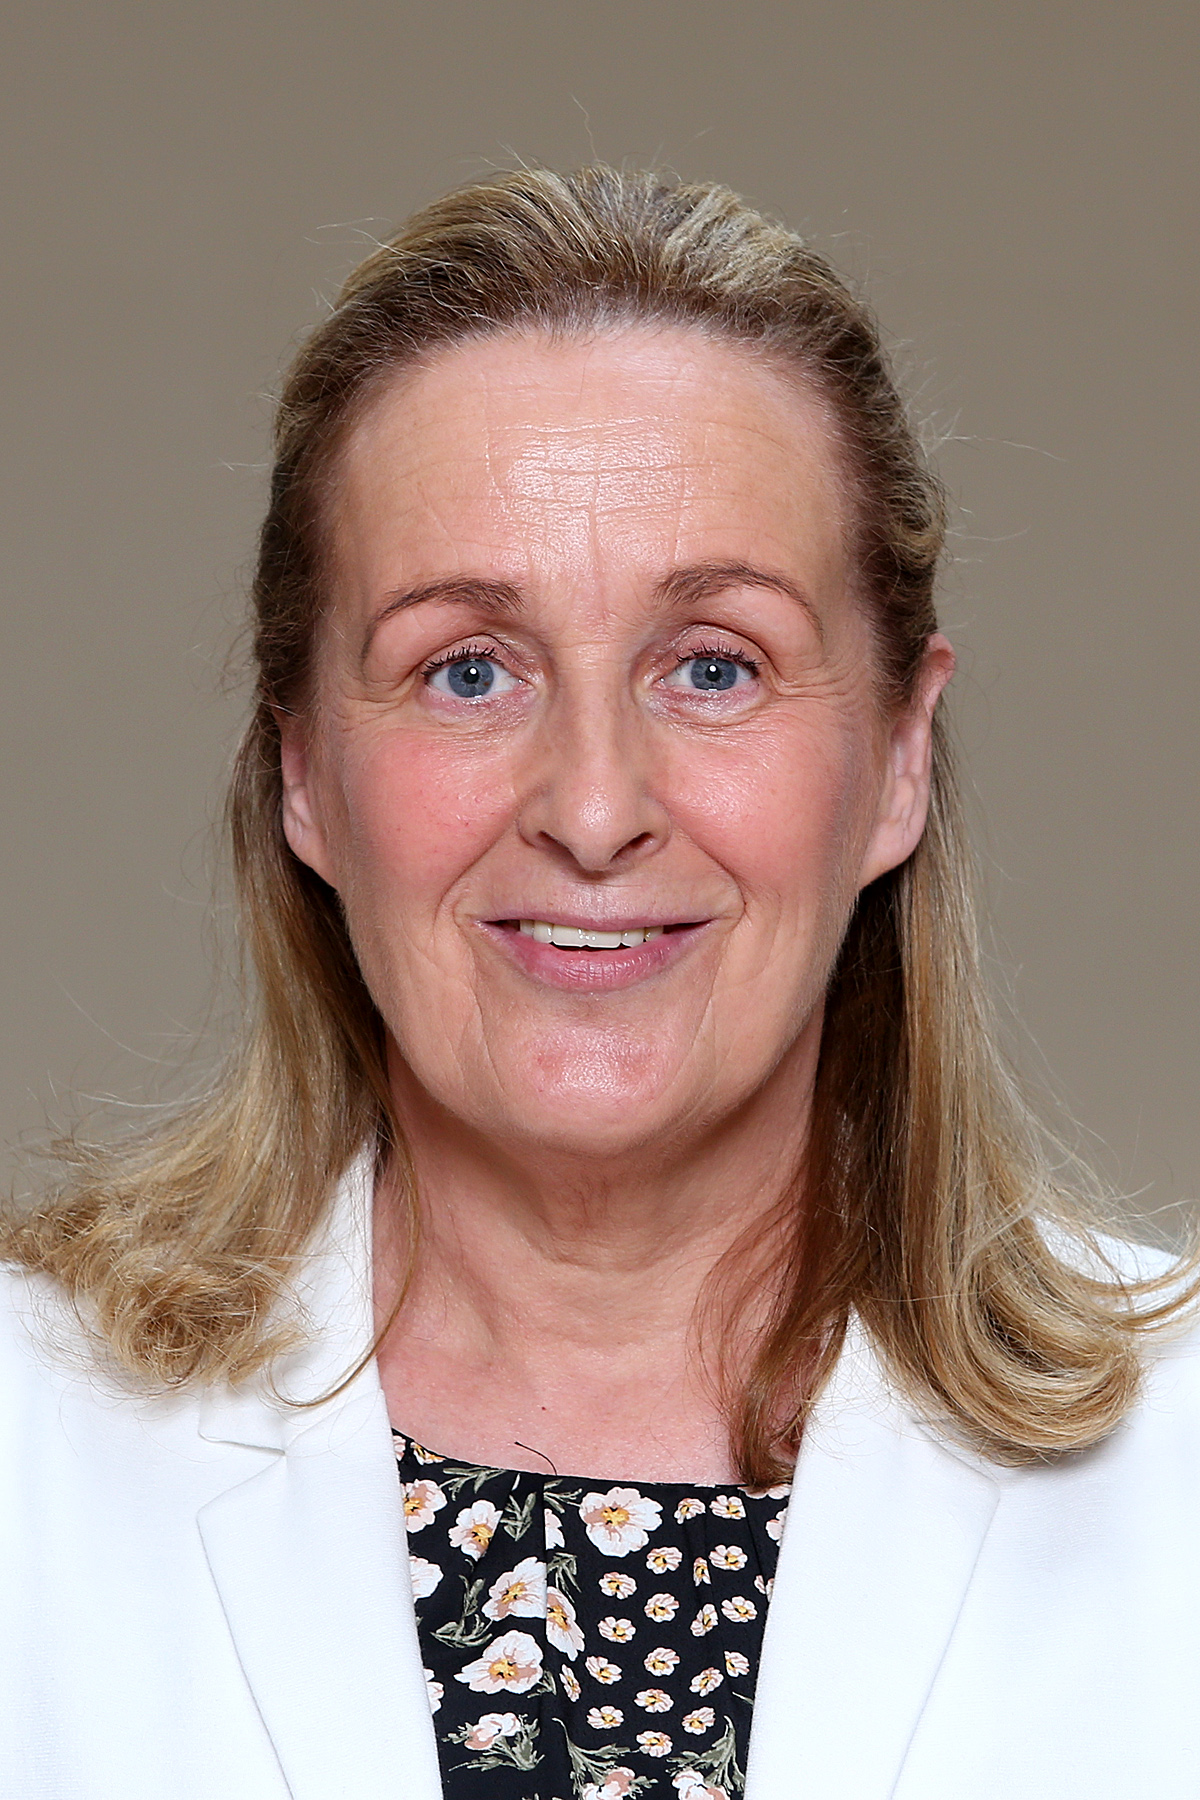 Cllr Catherine Kelly